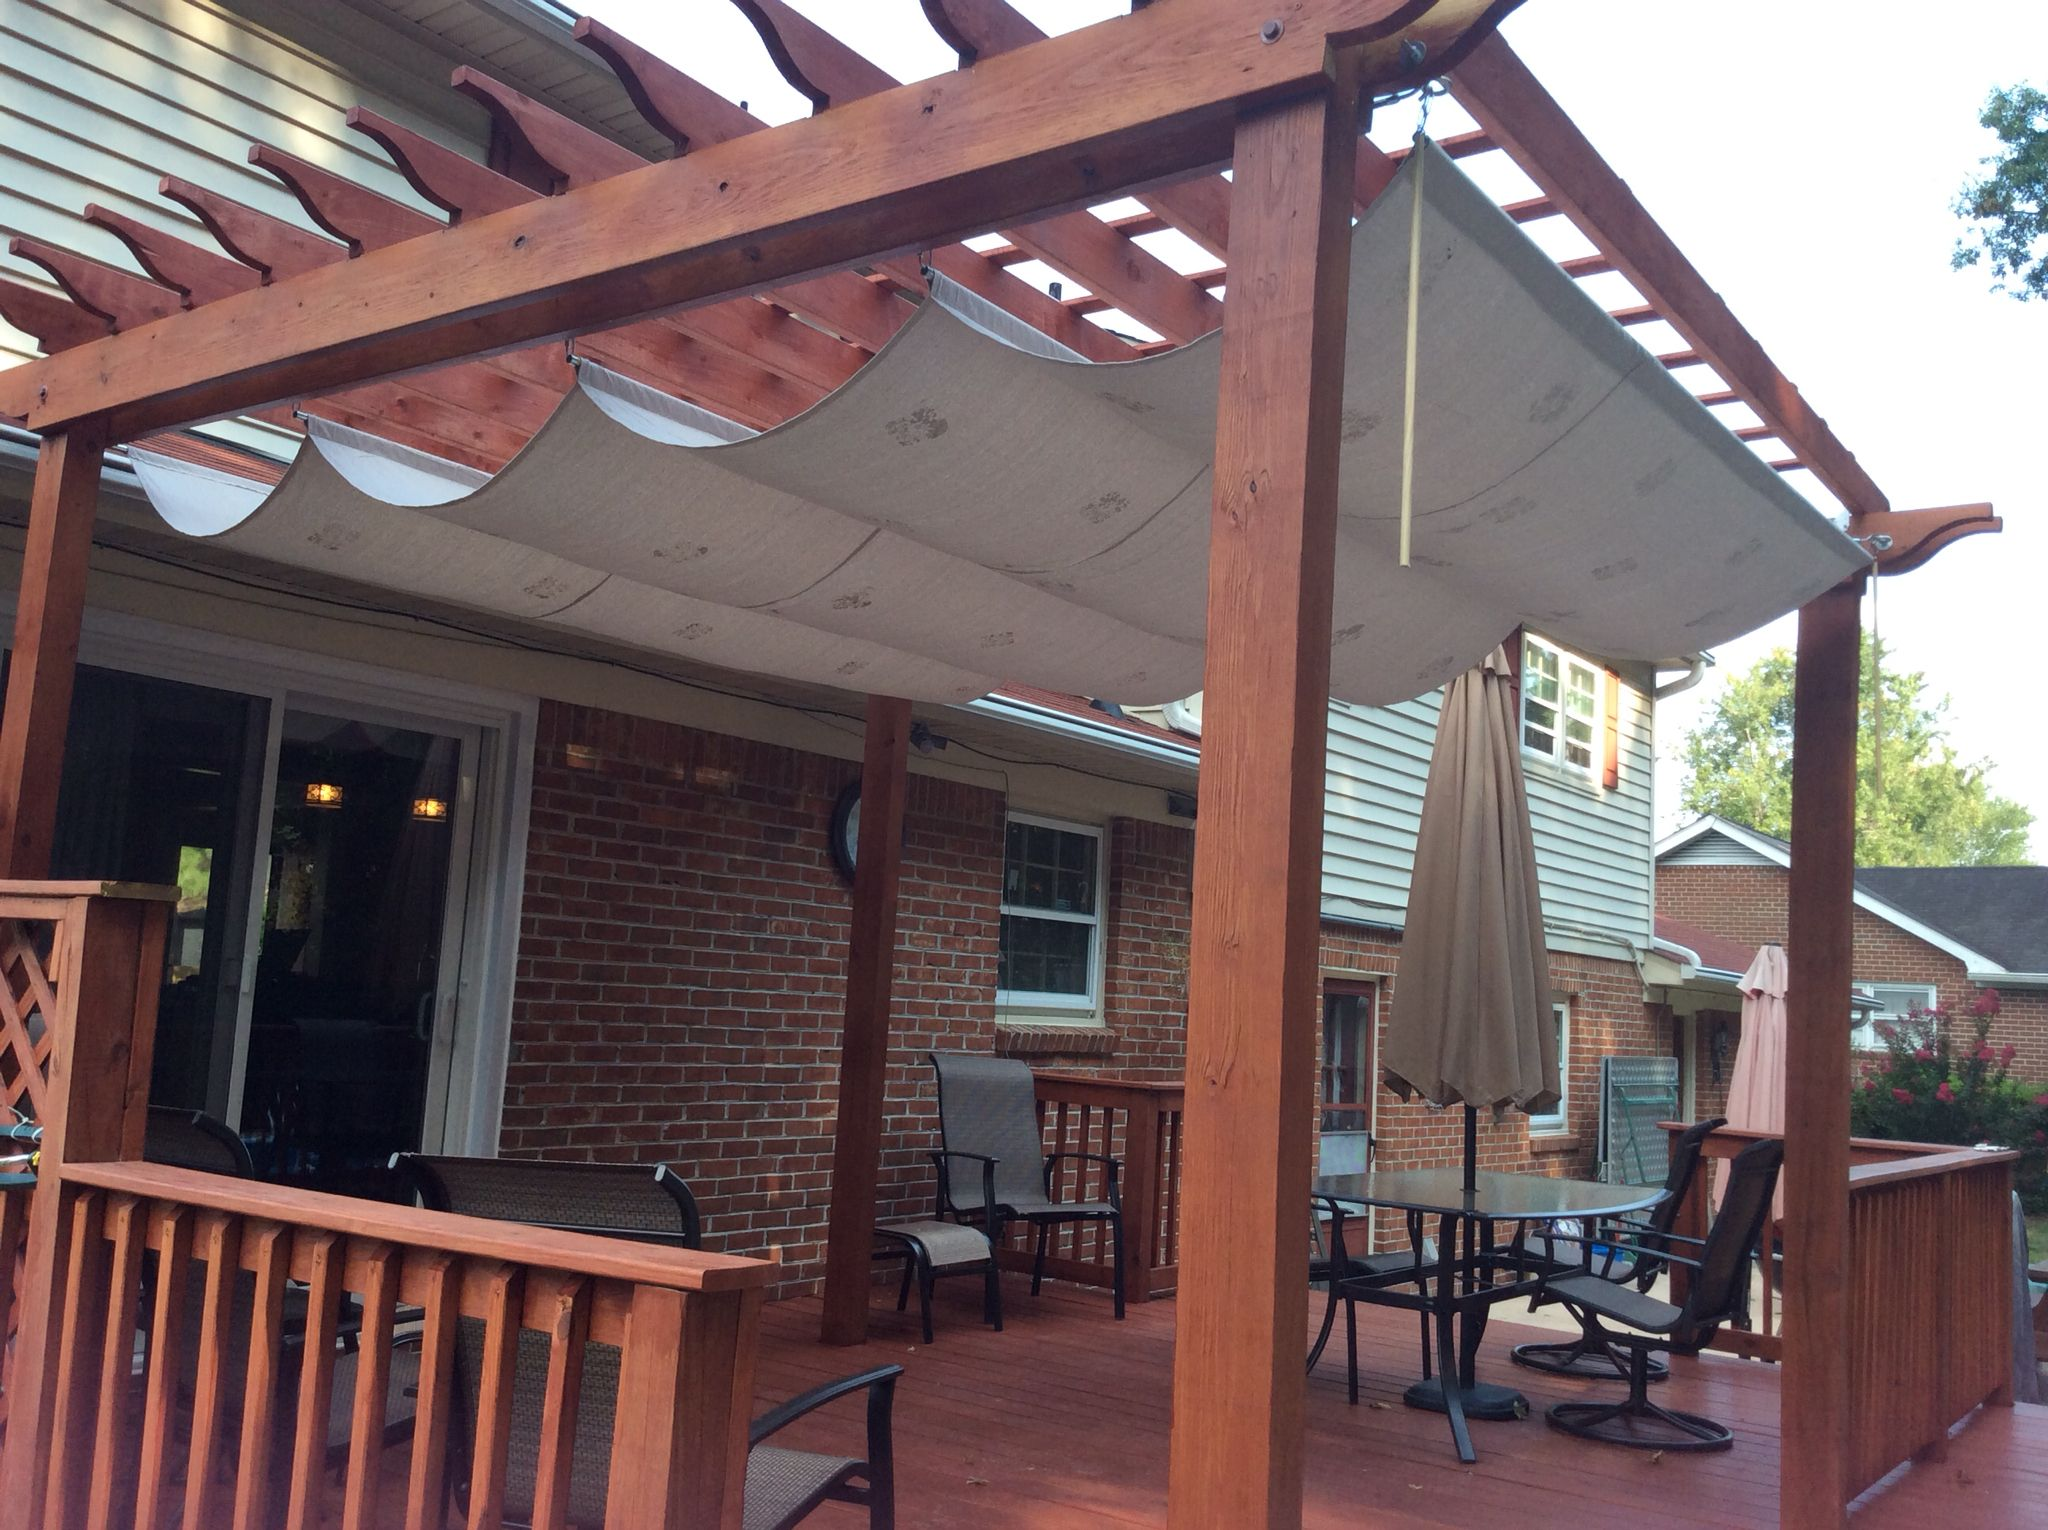 Pergola Shade Made With A Painters Tarp From Home Depot Rubber Stamp And Craft Paint Hobby Lobby 2 Cans Of Waterproofing Scotch Guard